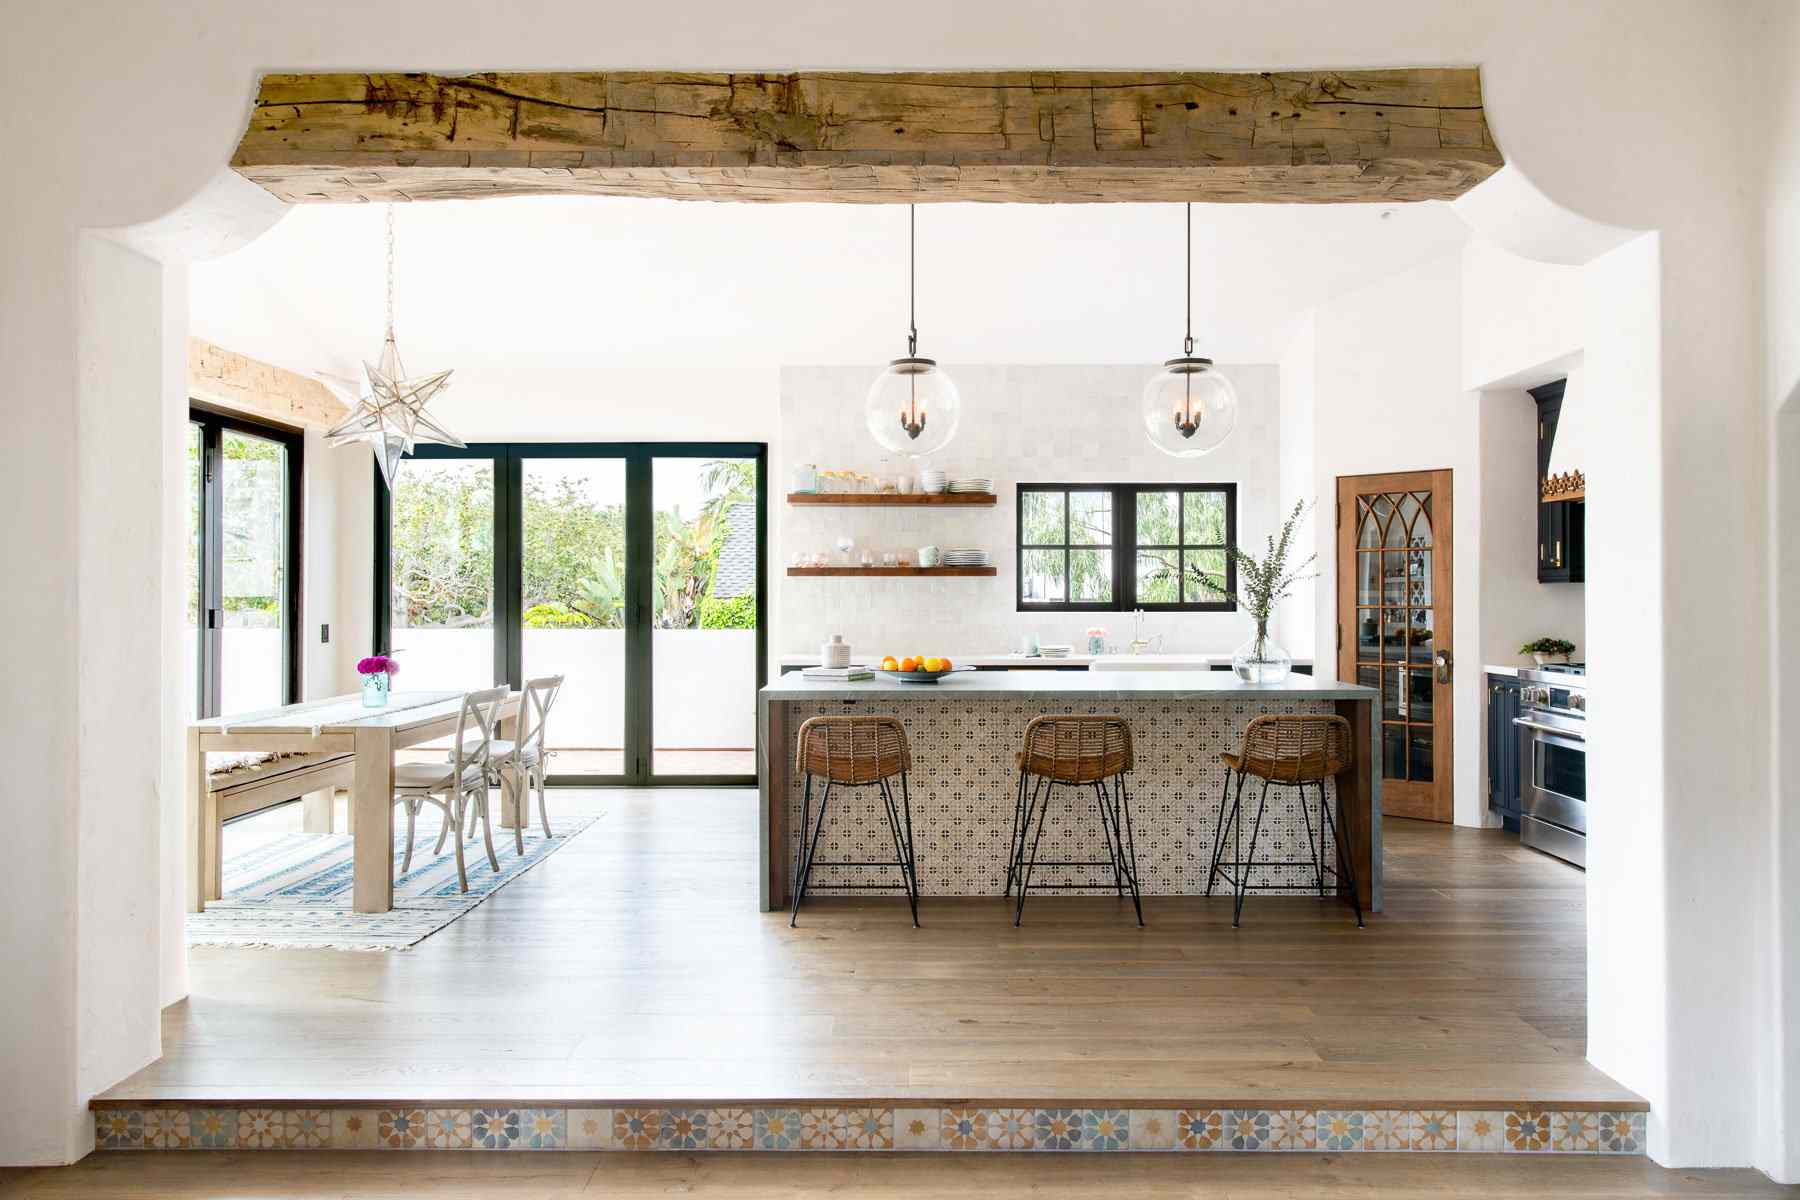 An open-concept kitchen with a tile-lined kitchen island